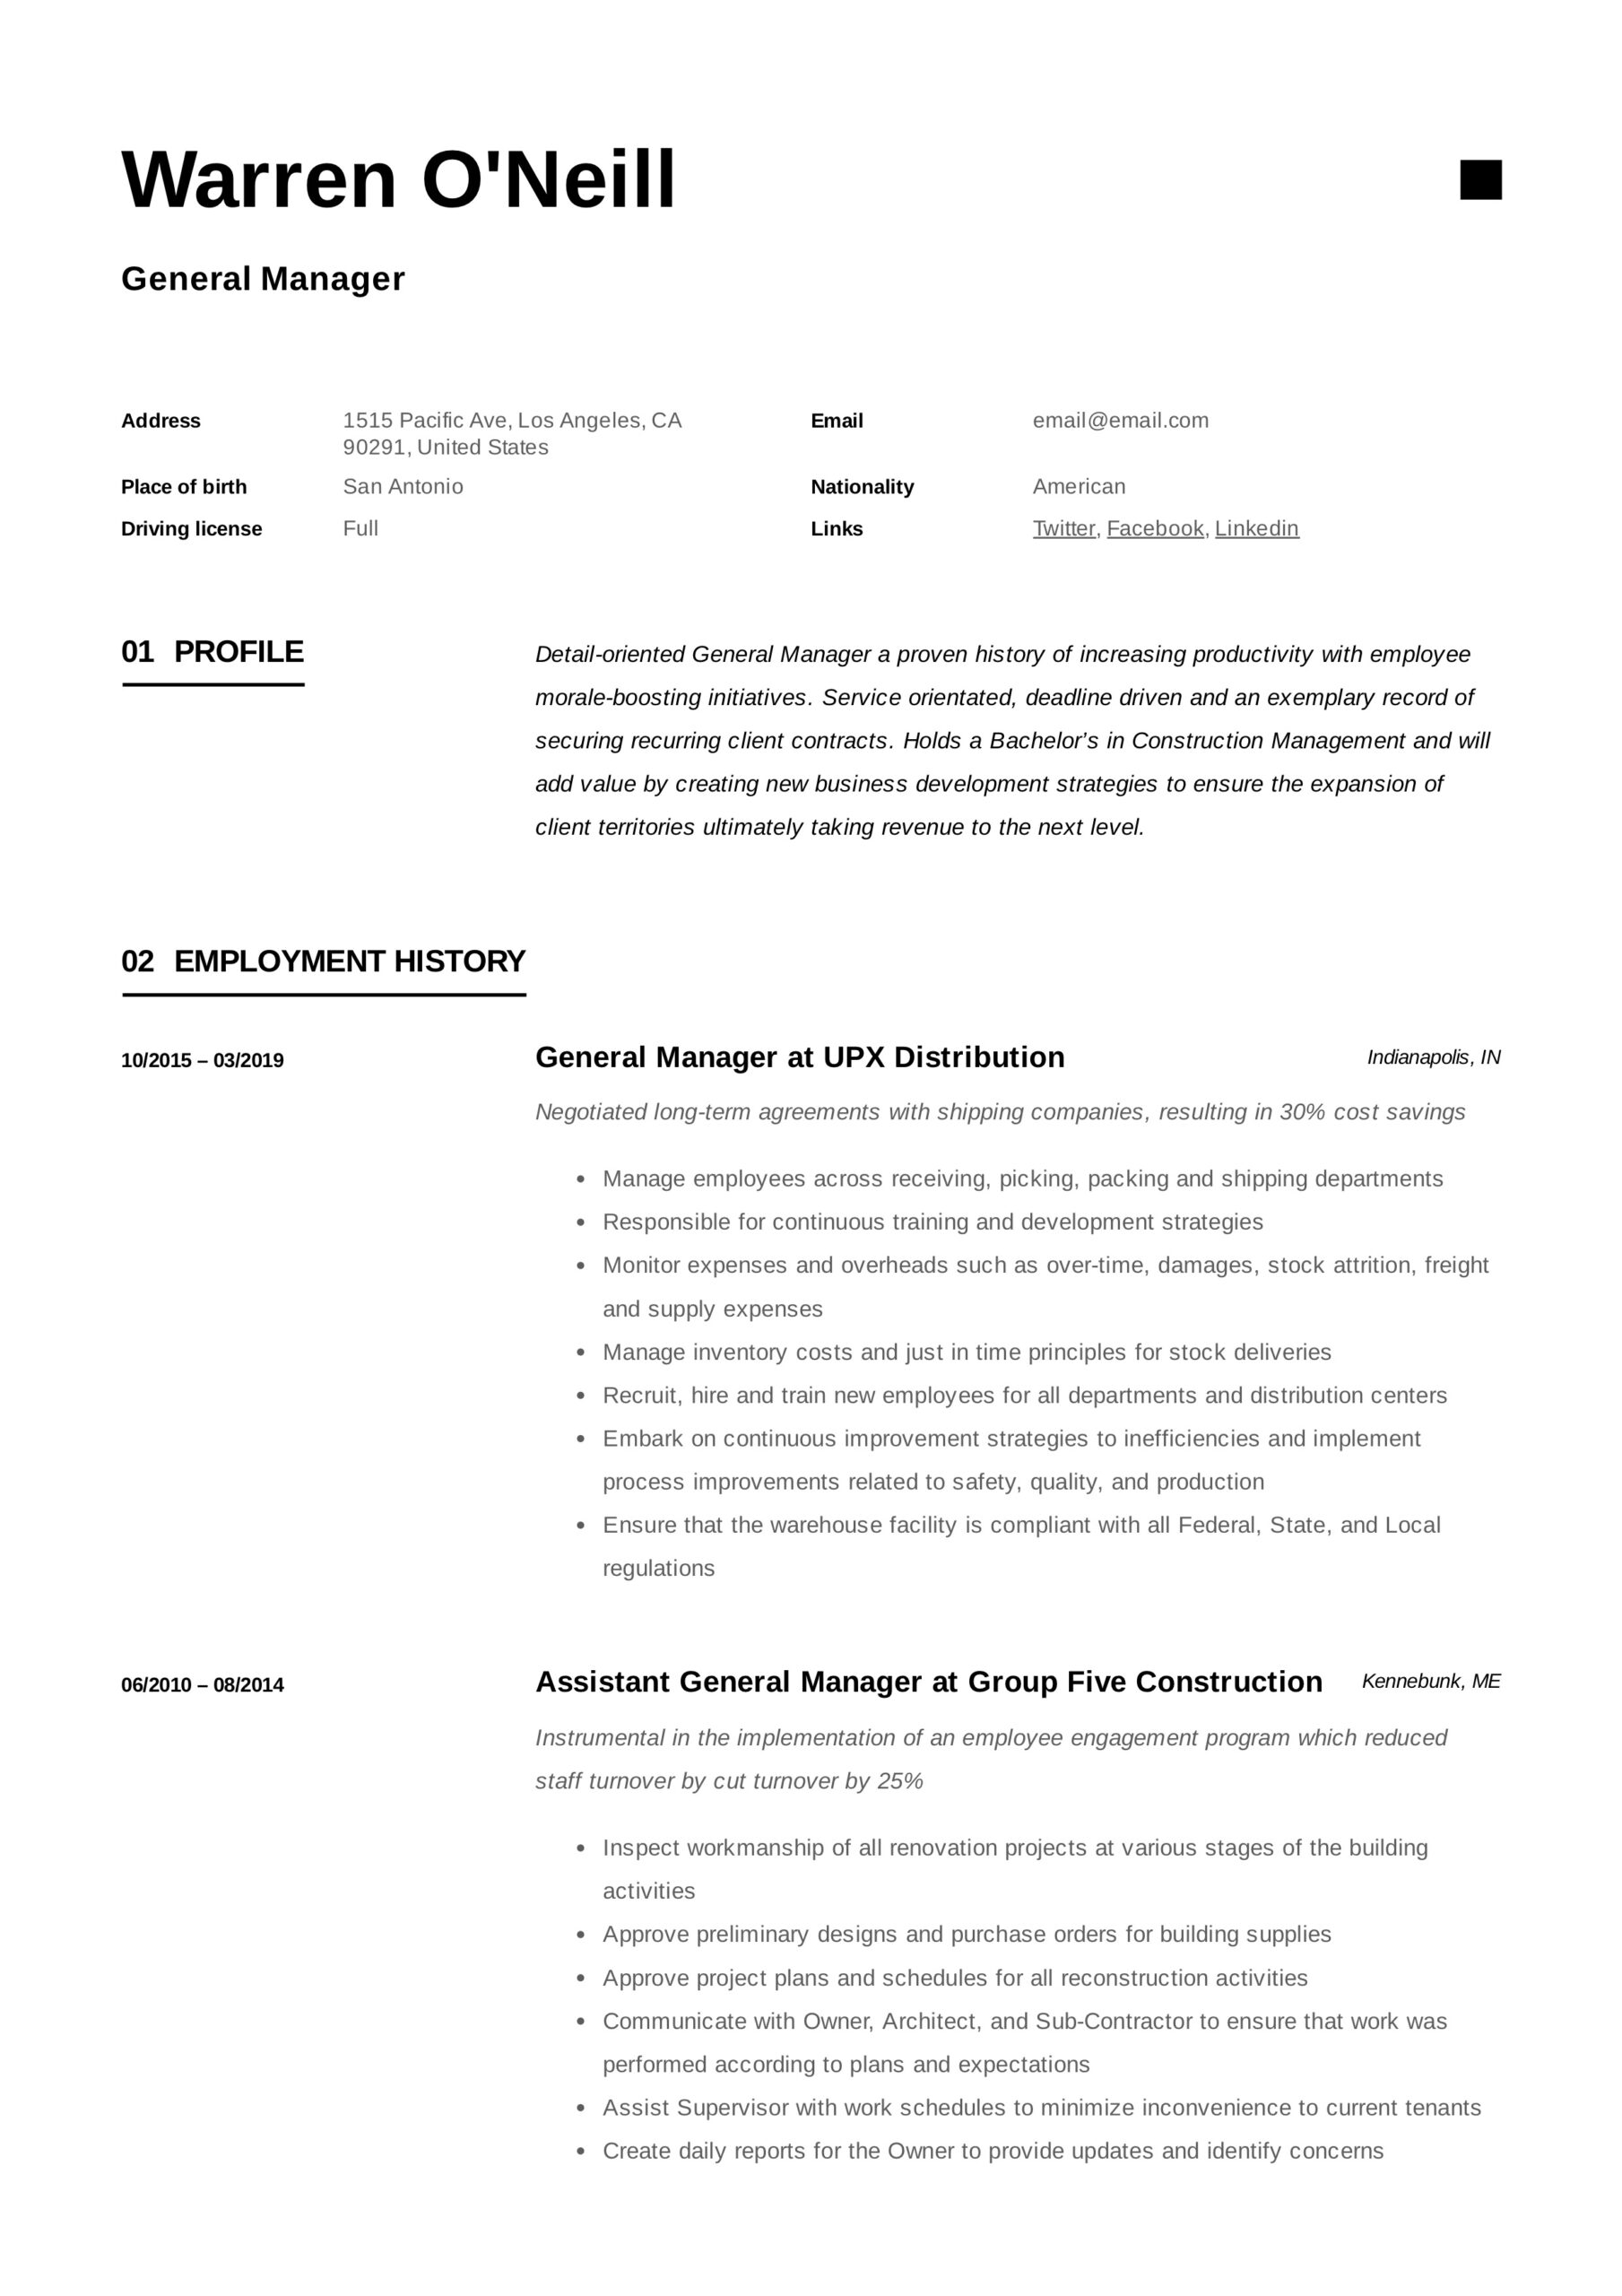 general manager resume writing guide examples pdf neill mba objective statement sample Resume General Manager Resume Examples